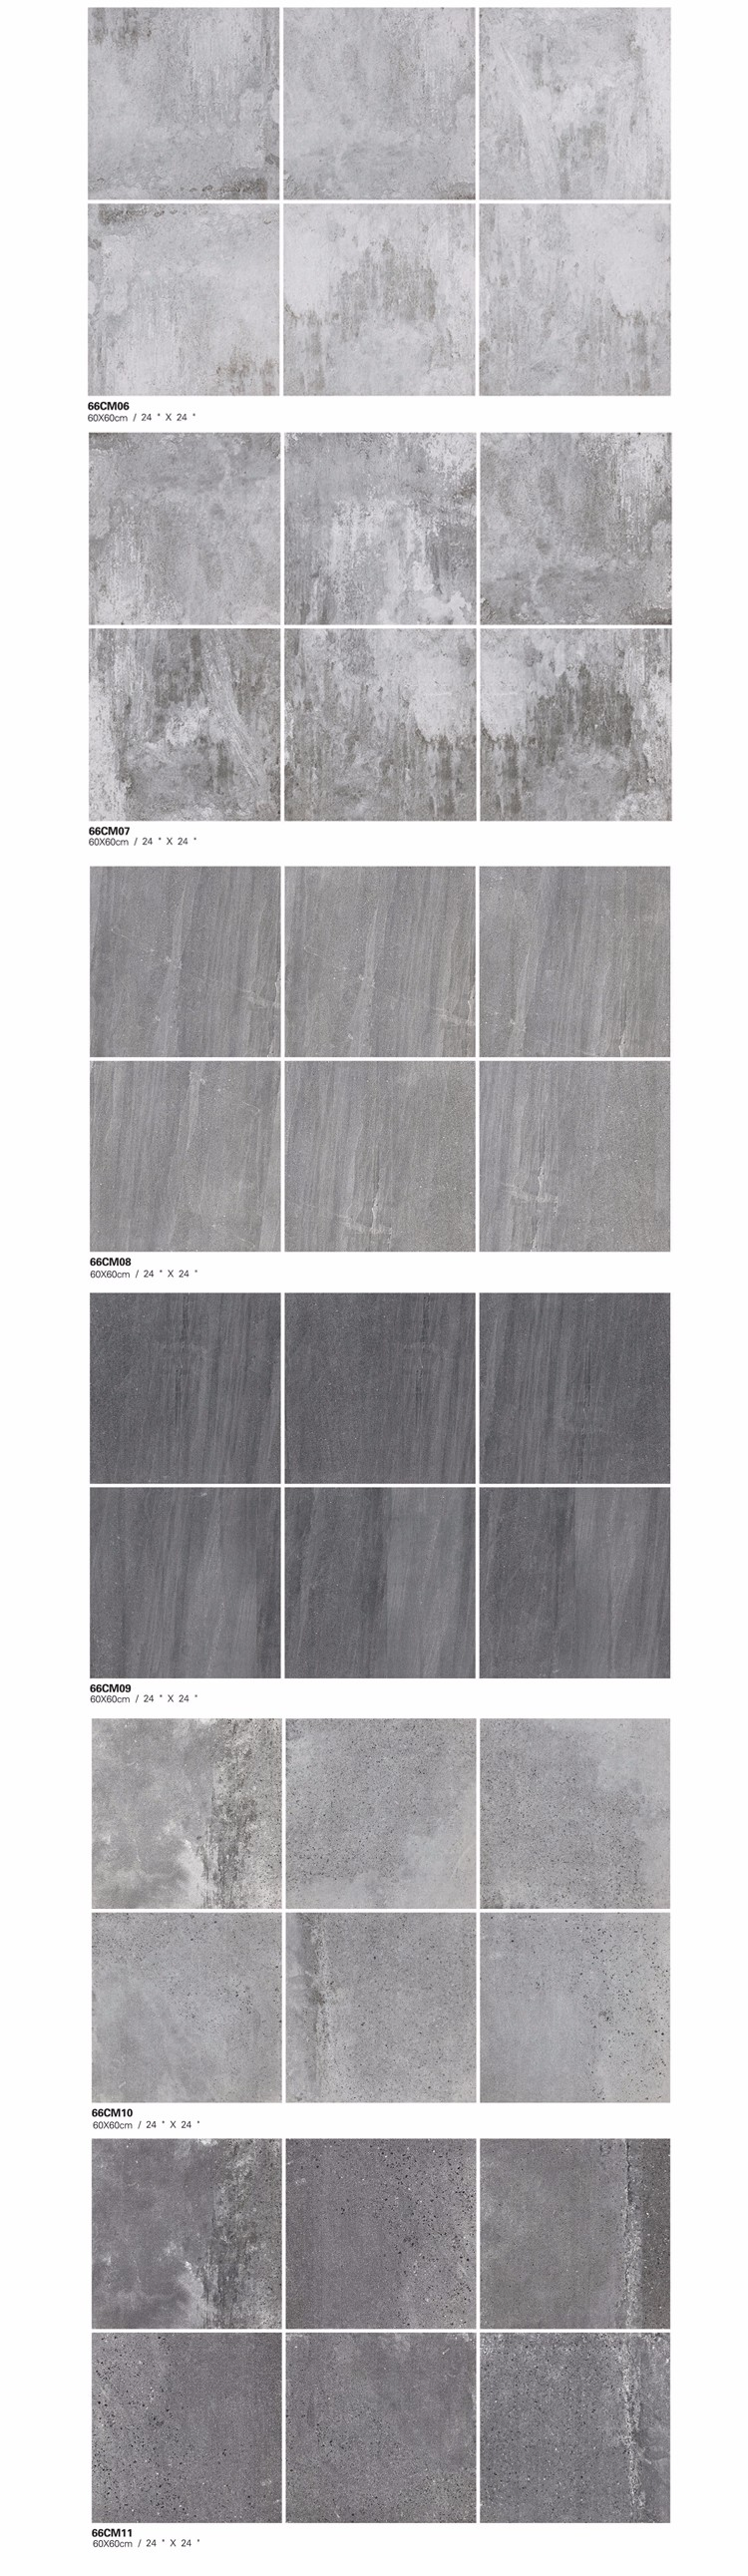 Cheap price kajaria floor light grey matte finished bathroom tiles cheap price kajaria floor light grey matte finished bathroom tiles 600x600mm 66ns03 dailygadgetfo Gallery